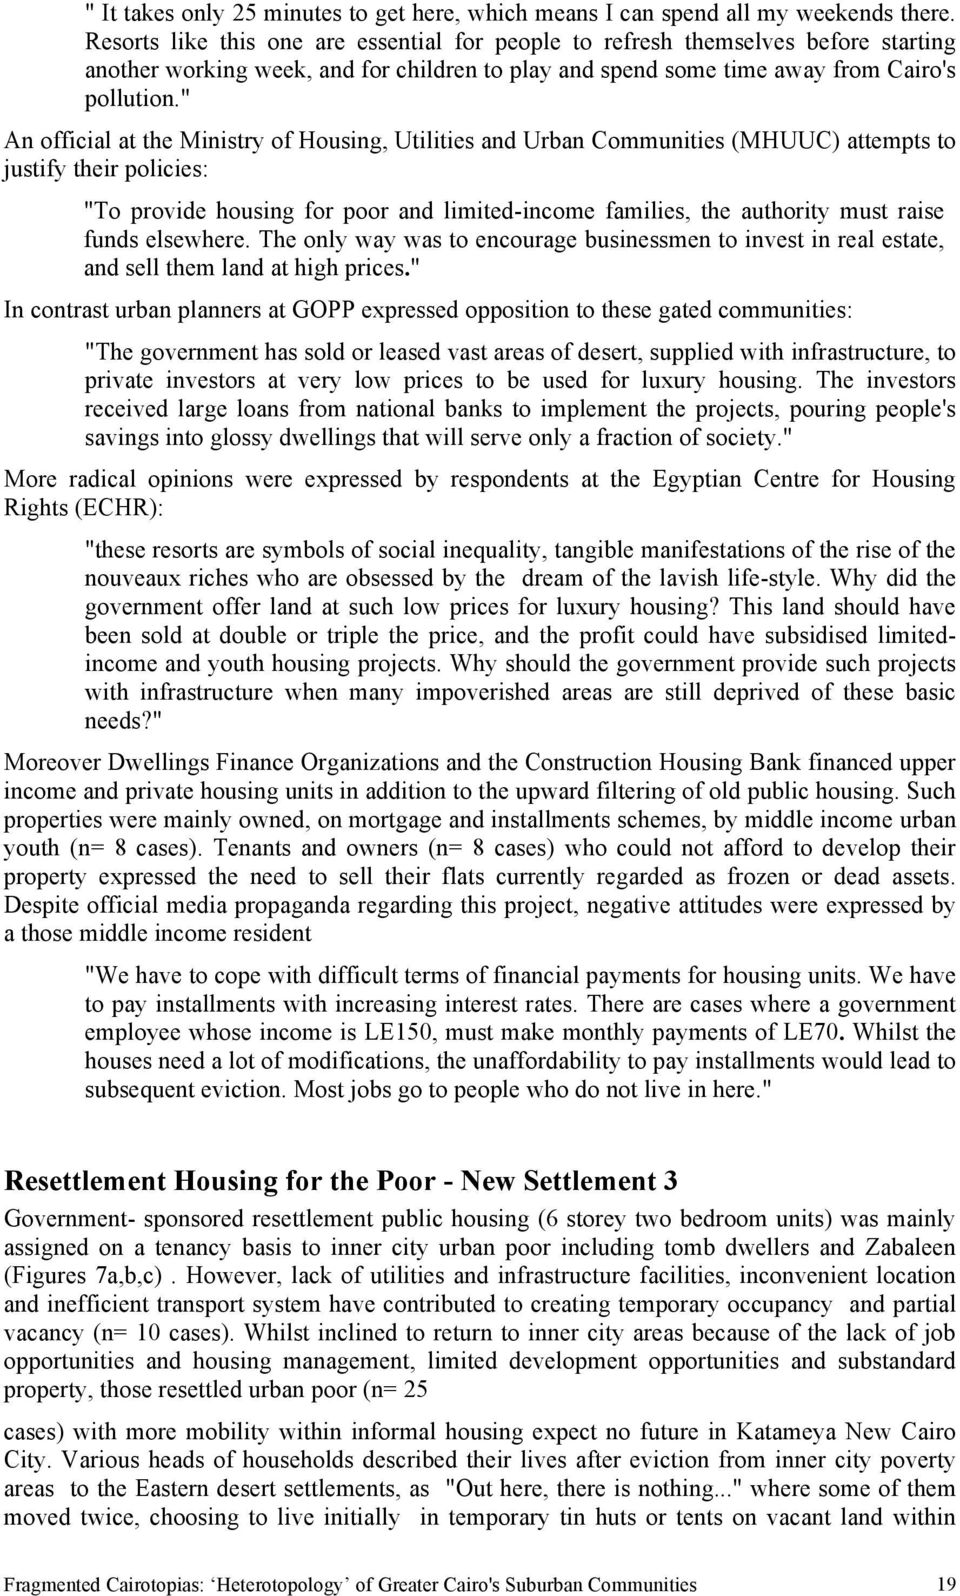 """ An official at the Ministry of Housing, Utilities and Urban Communities (MHUUC) attempts to justify their policies: ""To provide housing for poor and limited-income families, the authority must"